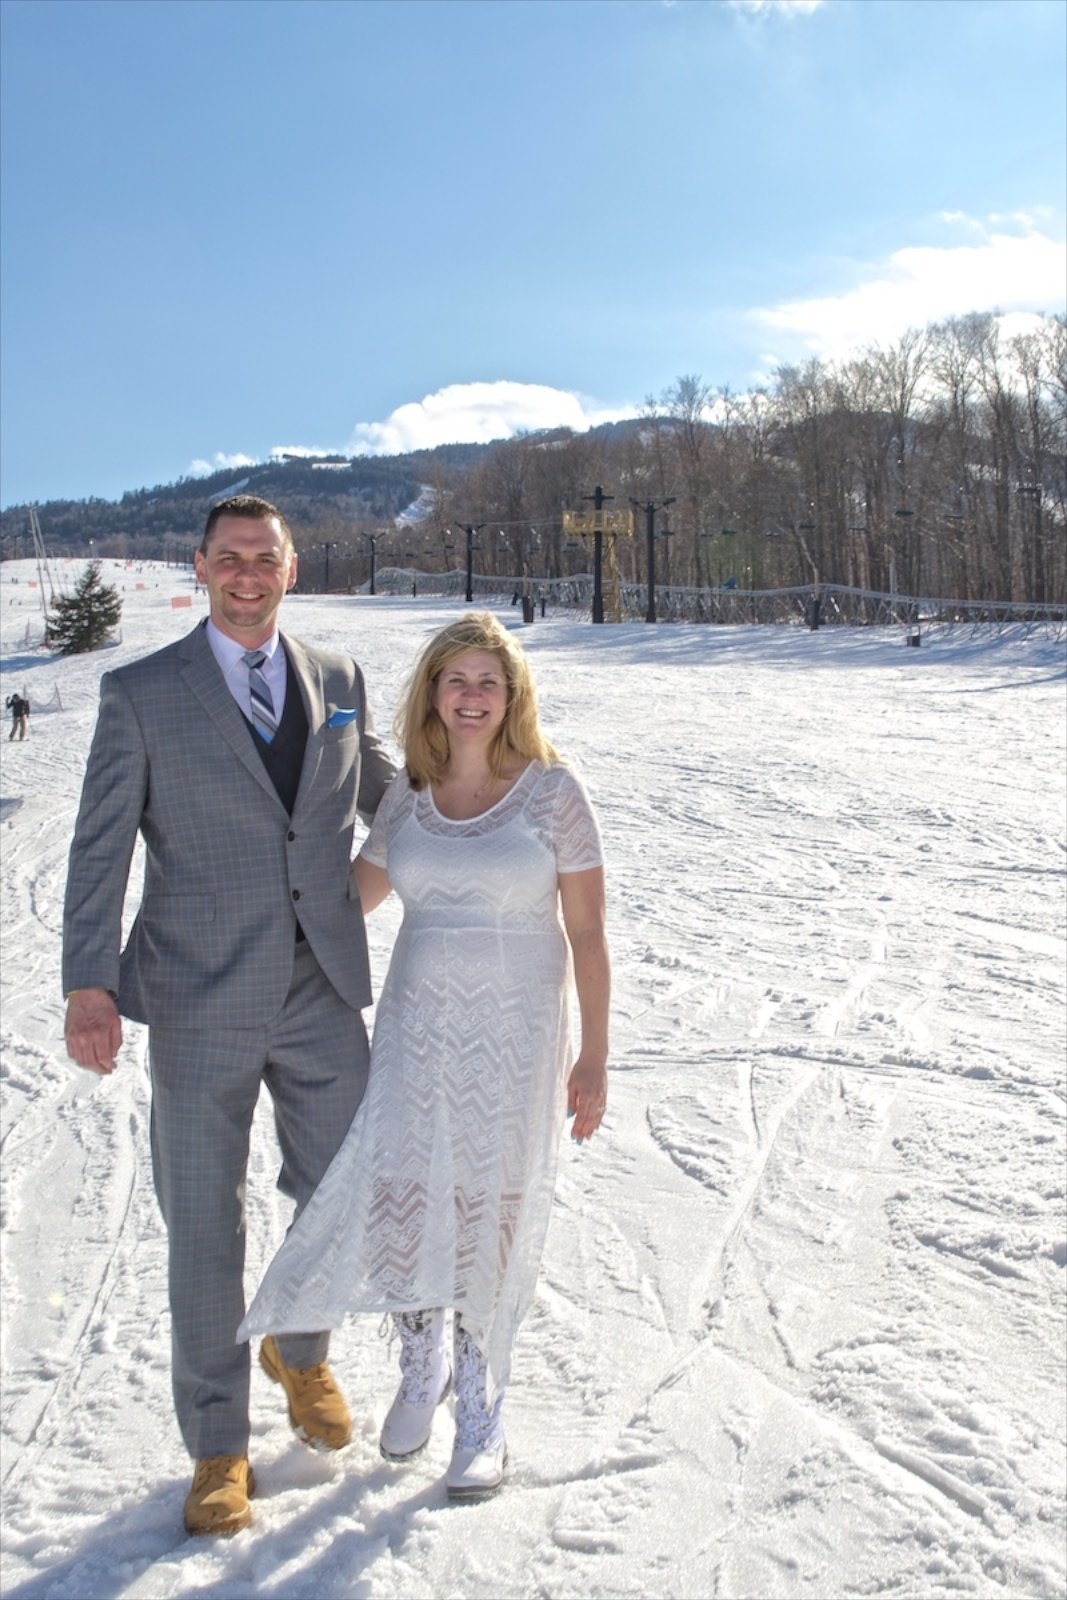 Killington Vermont wedding photographer for elopement 1